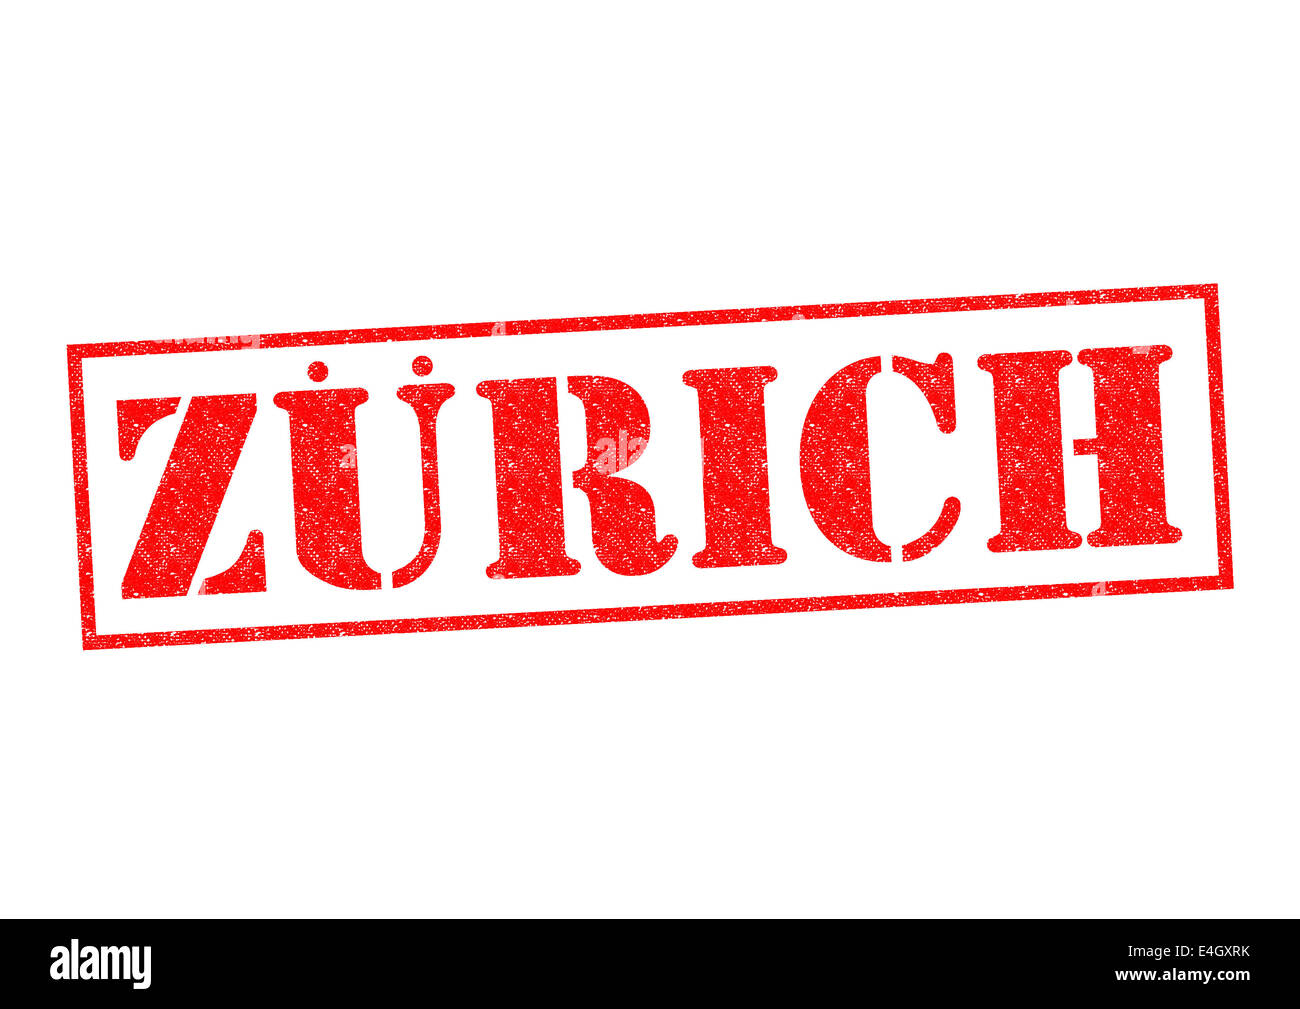 ZURICH Rubber Stamp over a white background. - Stock Image